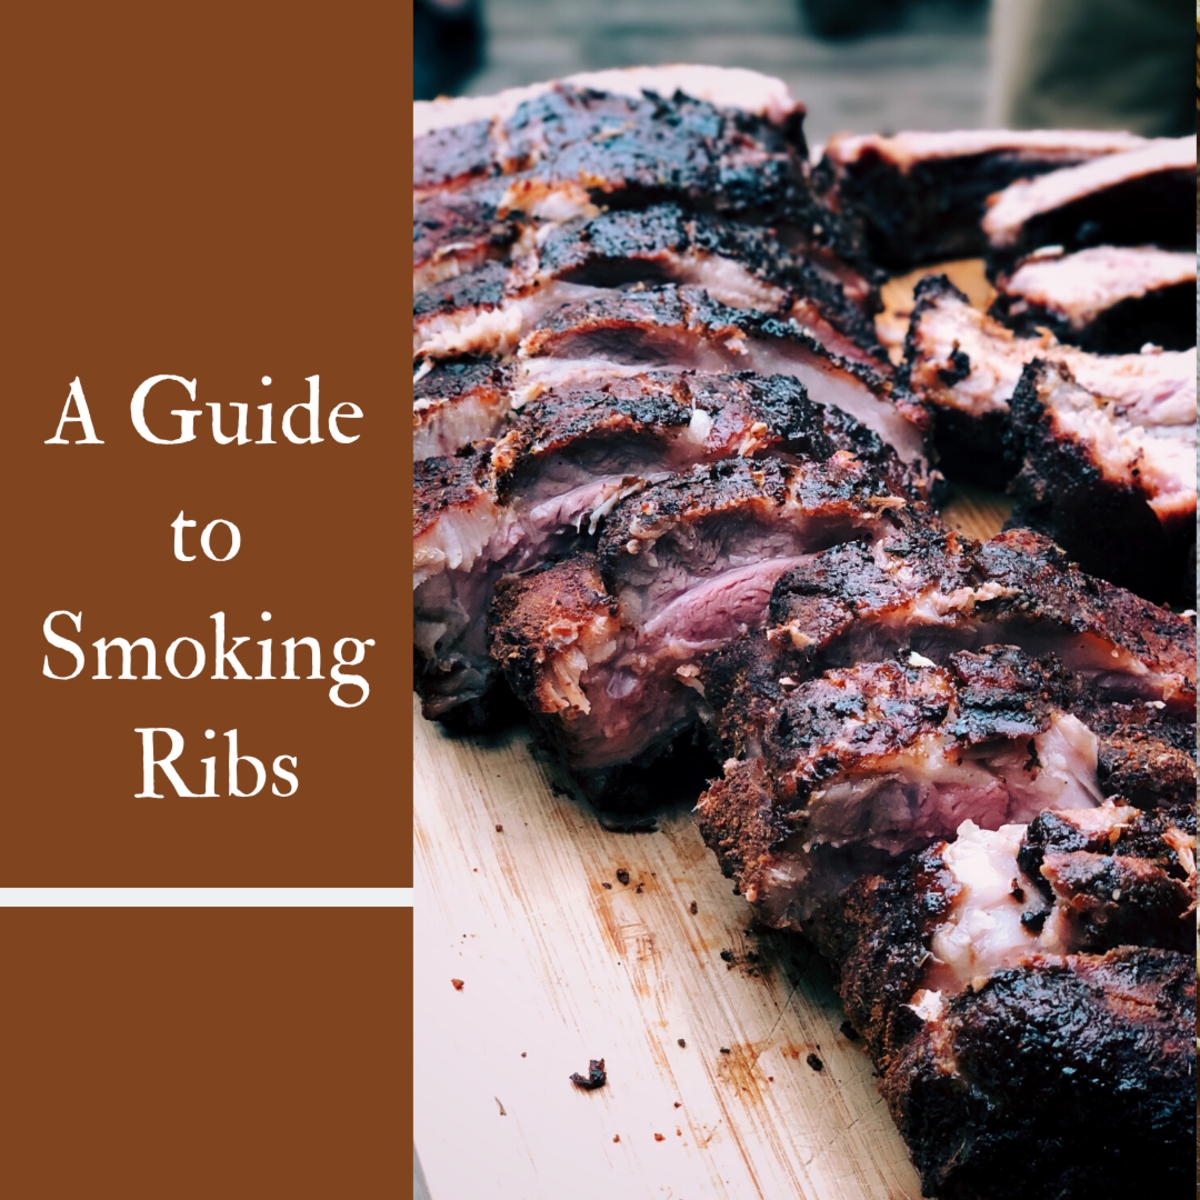 Smoked ribs are a truly delicious meal. Read on to learn how to make them correctly!